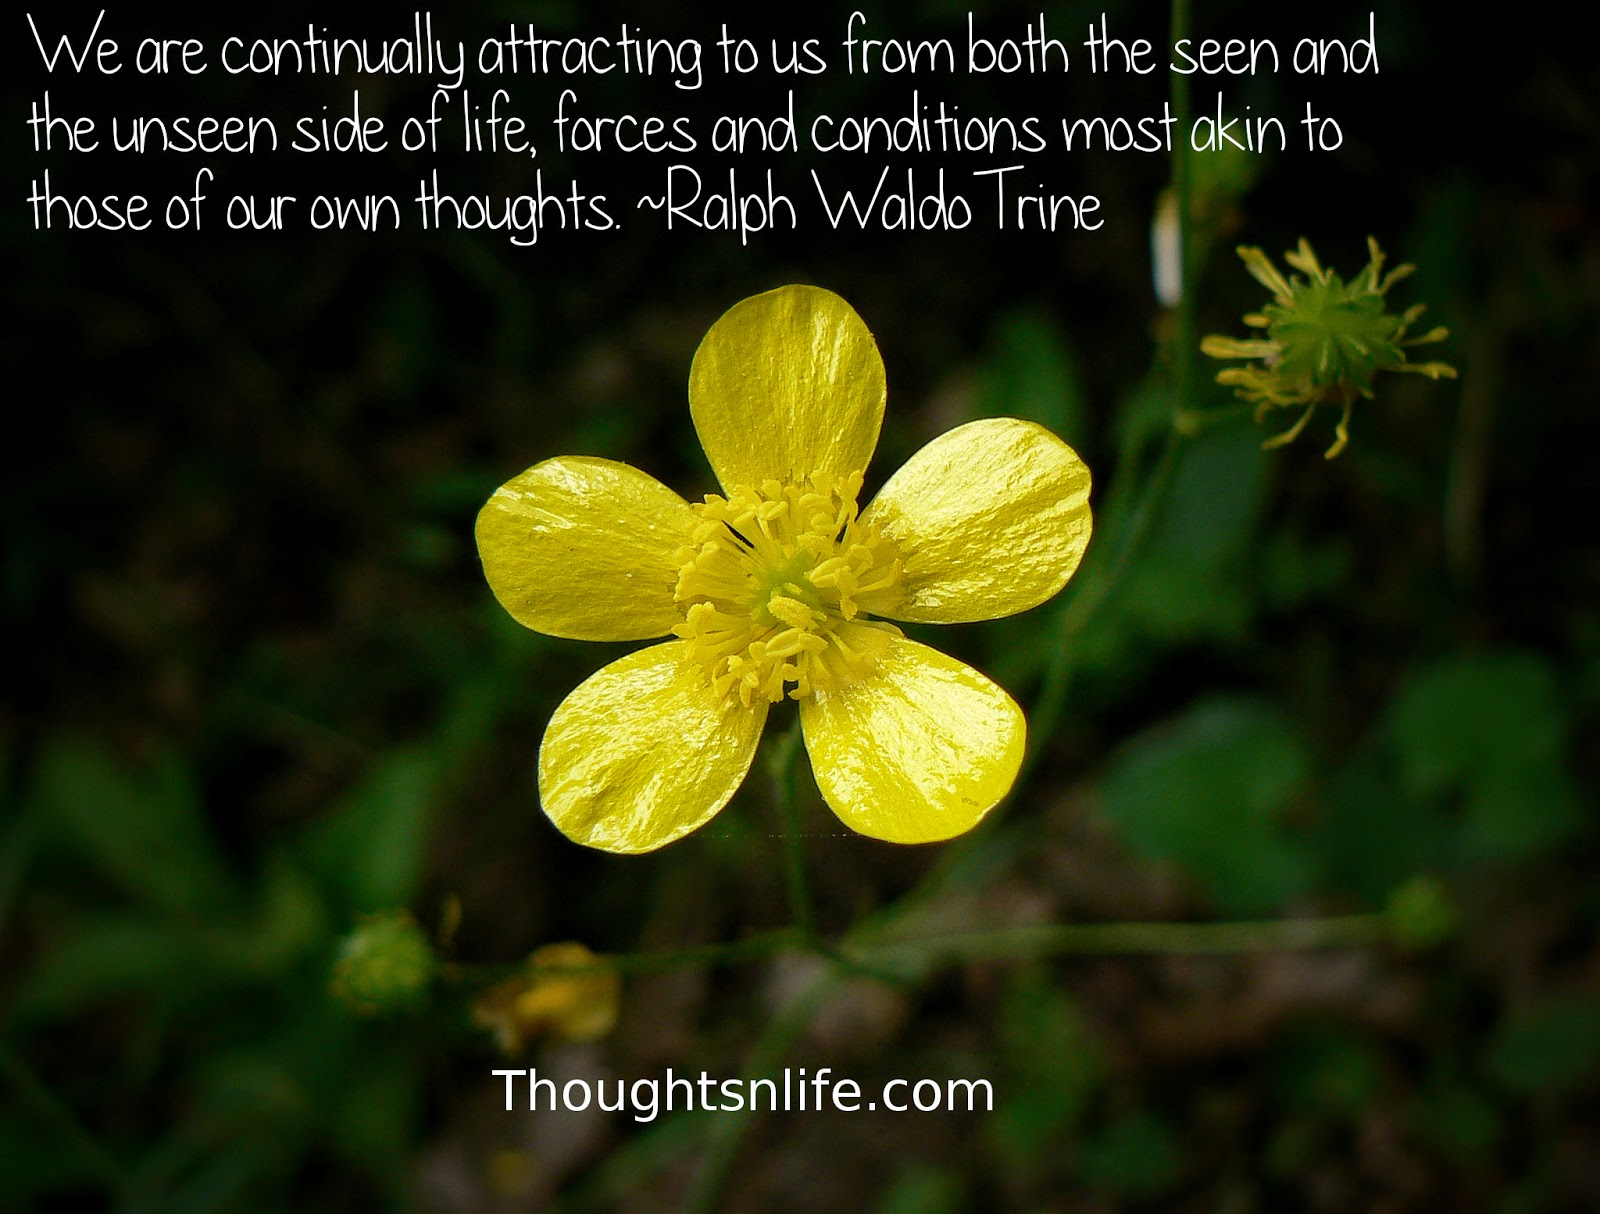 Thoughtsnlife.com: We are continually attracting to us from both the seen and the unseen side of life, forces and conditions most akin to those of our own thoughts. Ralph Waldo Trine